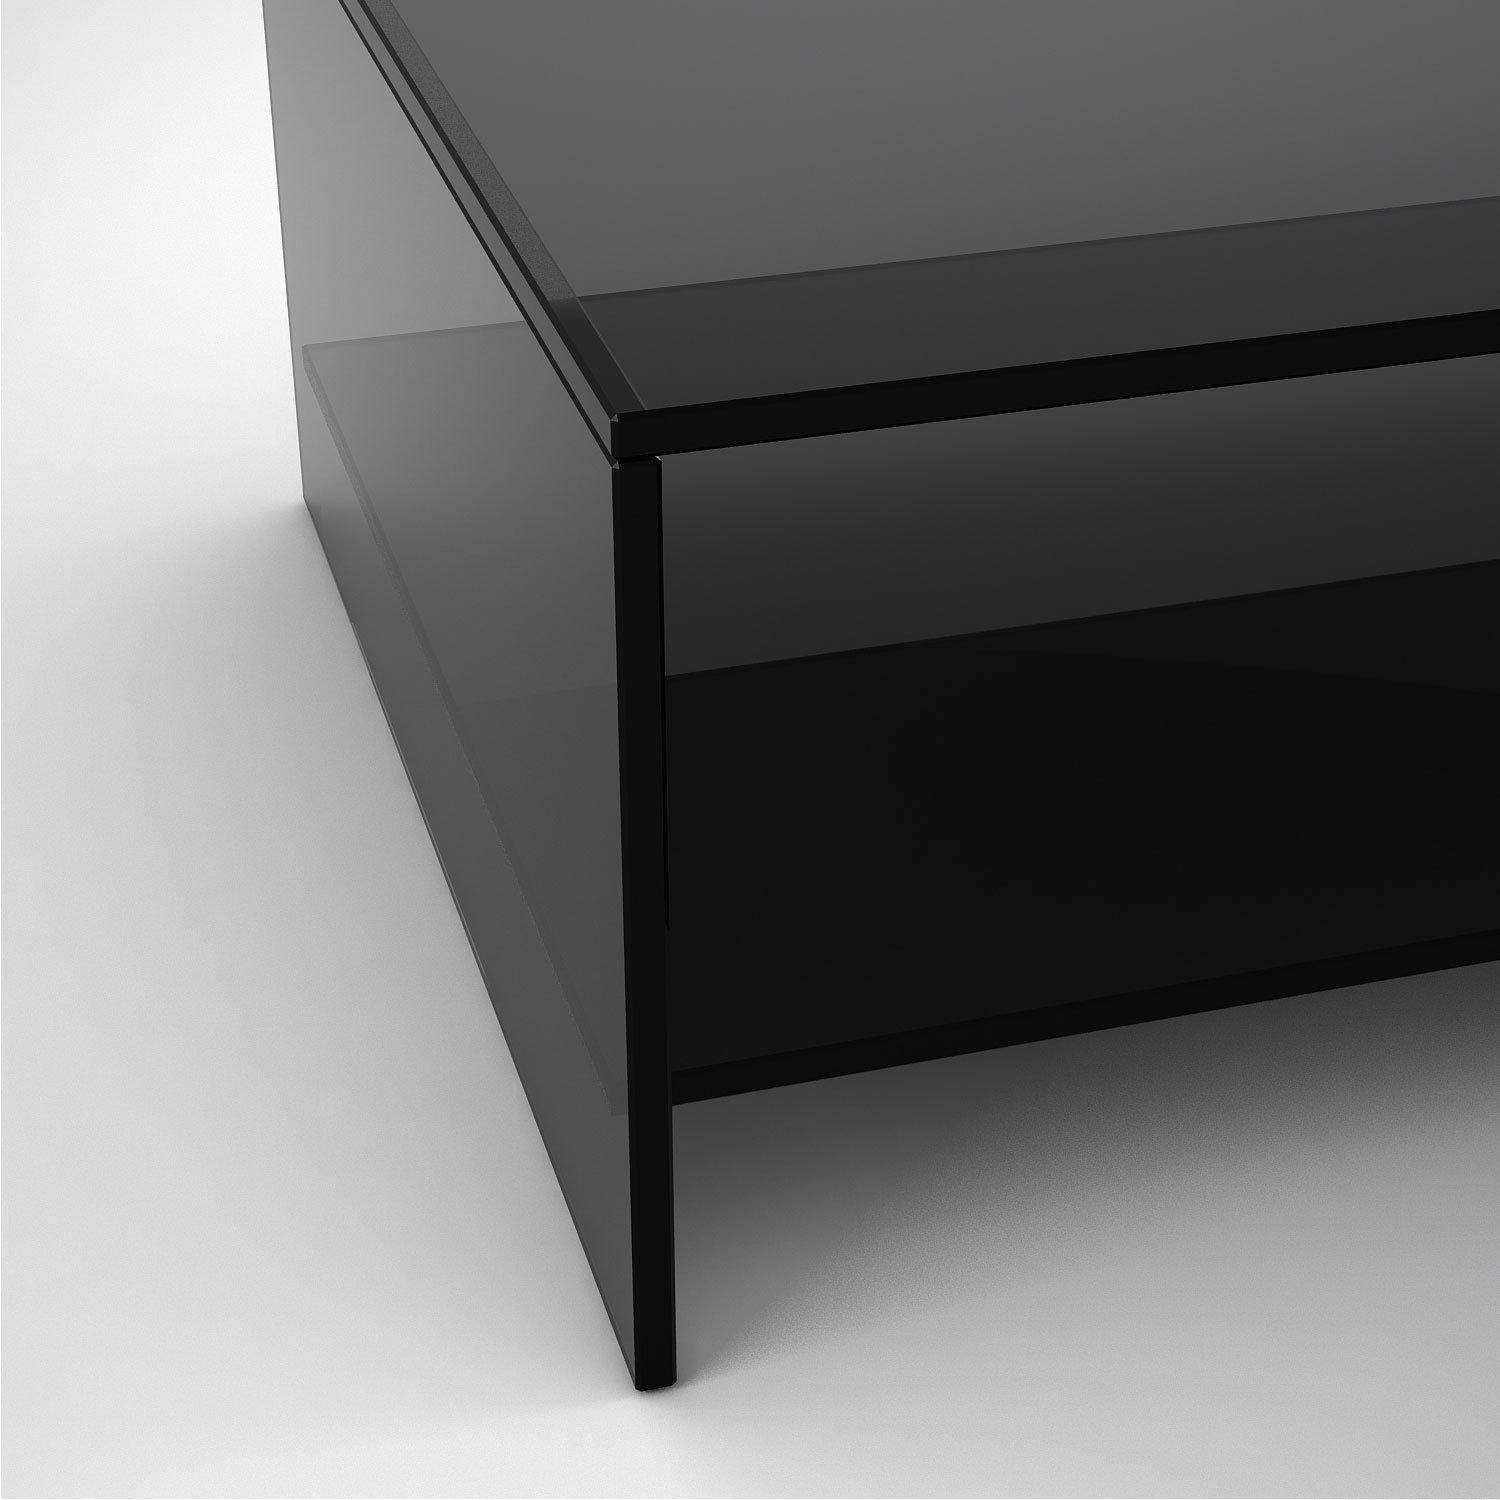 Glass Coffee Tables Uk Only: Rectangular Smoked Glass Coffee Table With Shelf